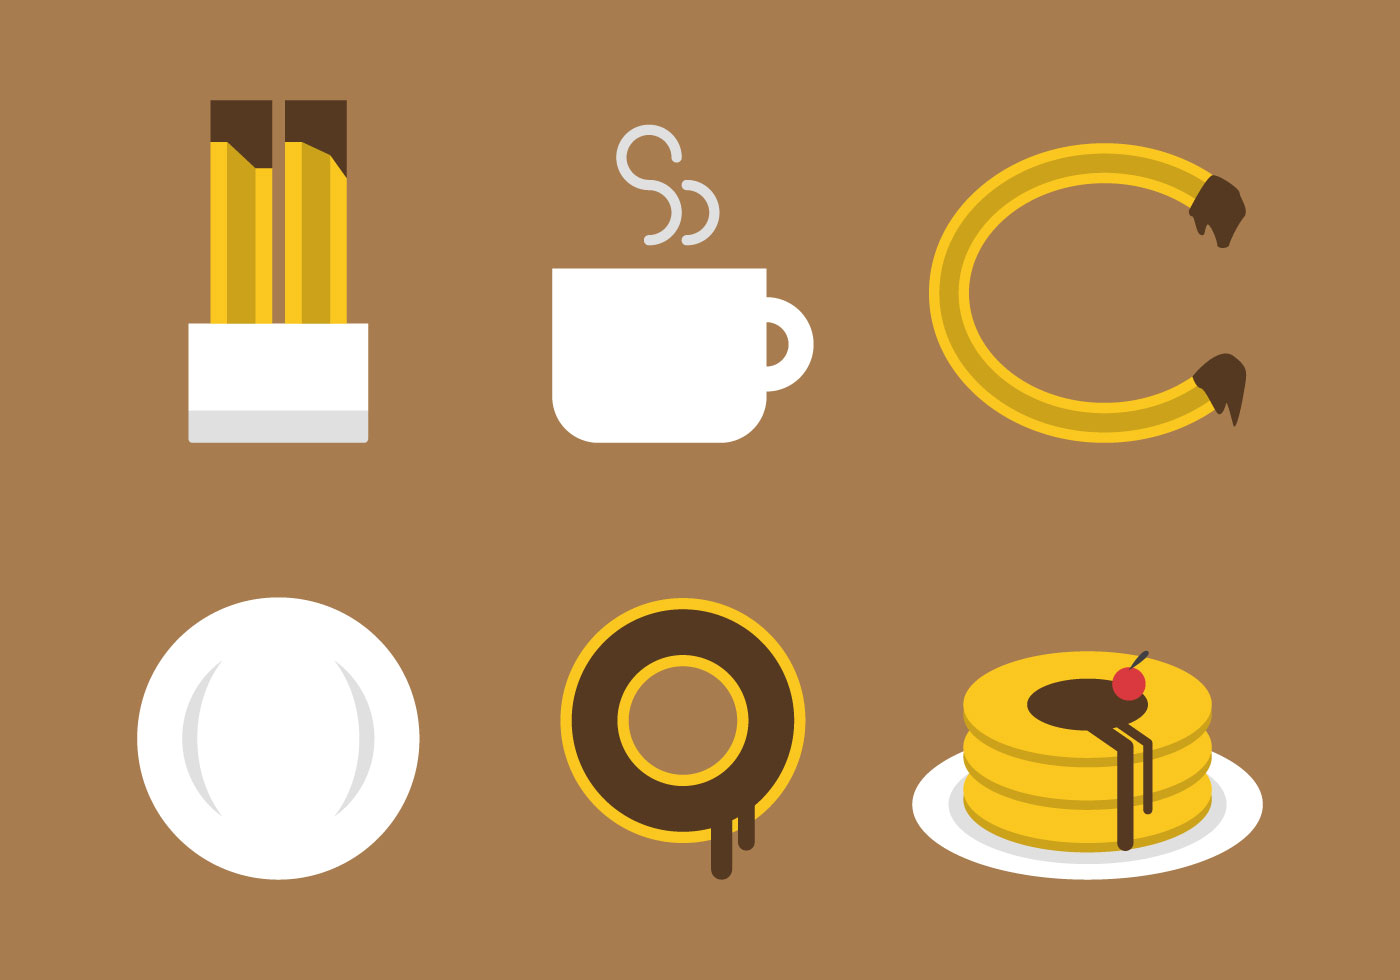 Free Churros Vector Icons 4 Download Free Vector Art